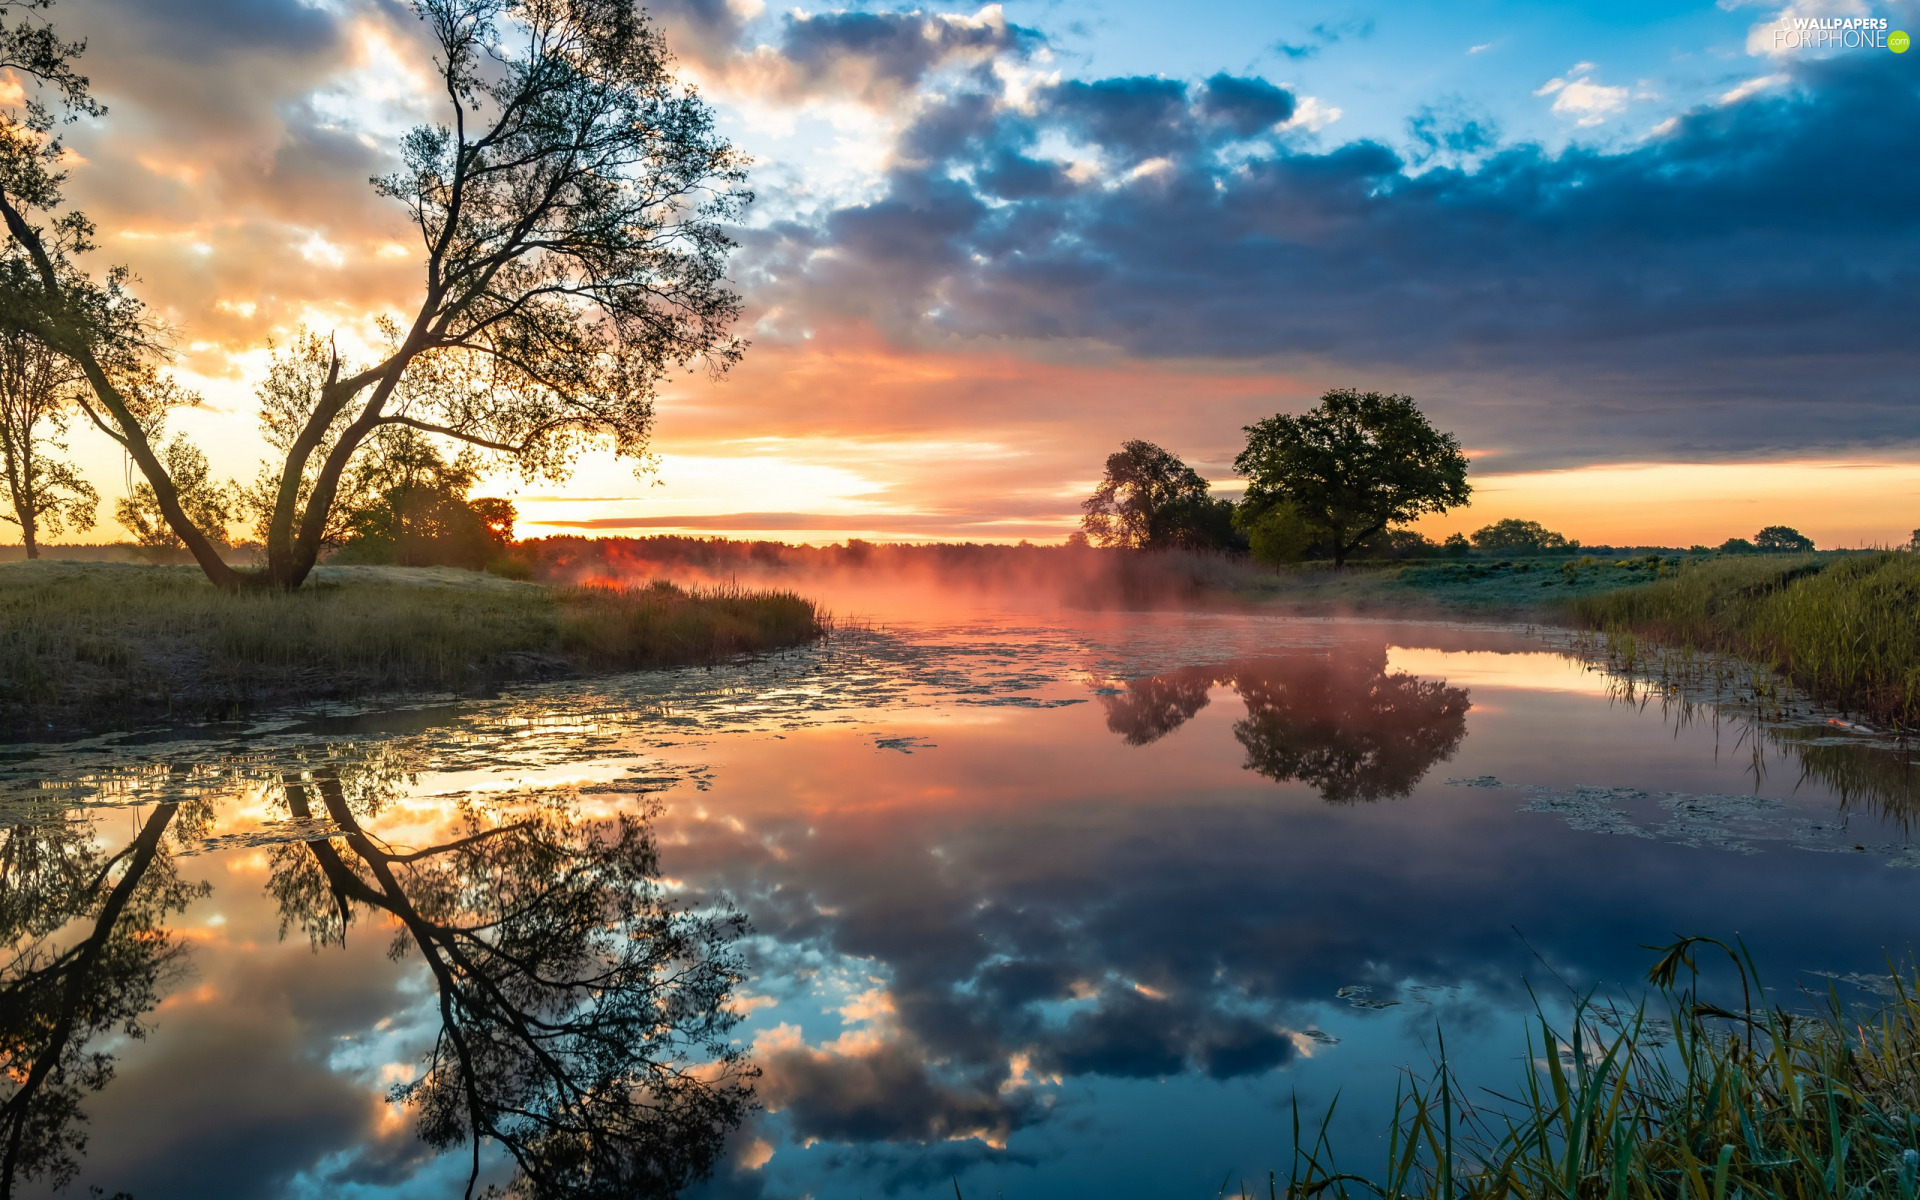 viewes, grass, reflection, Sunrise, clouds, trees, River, morning